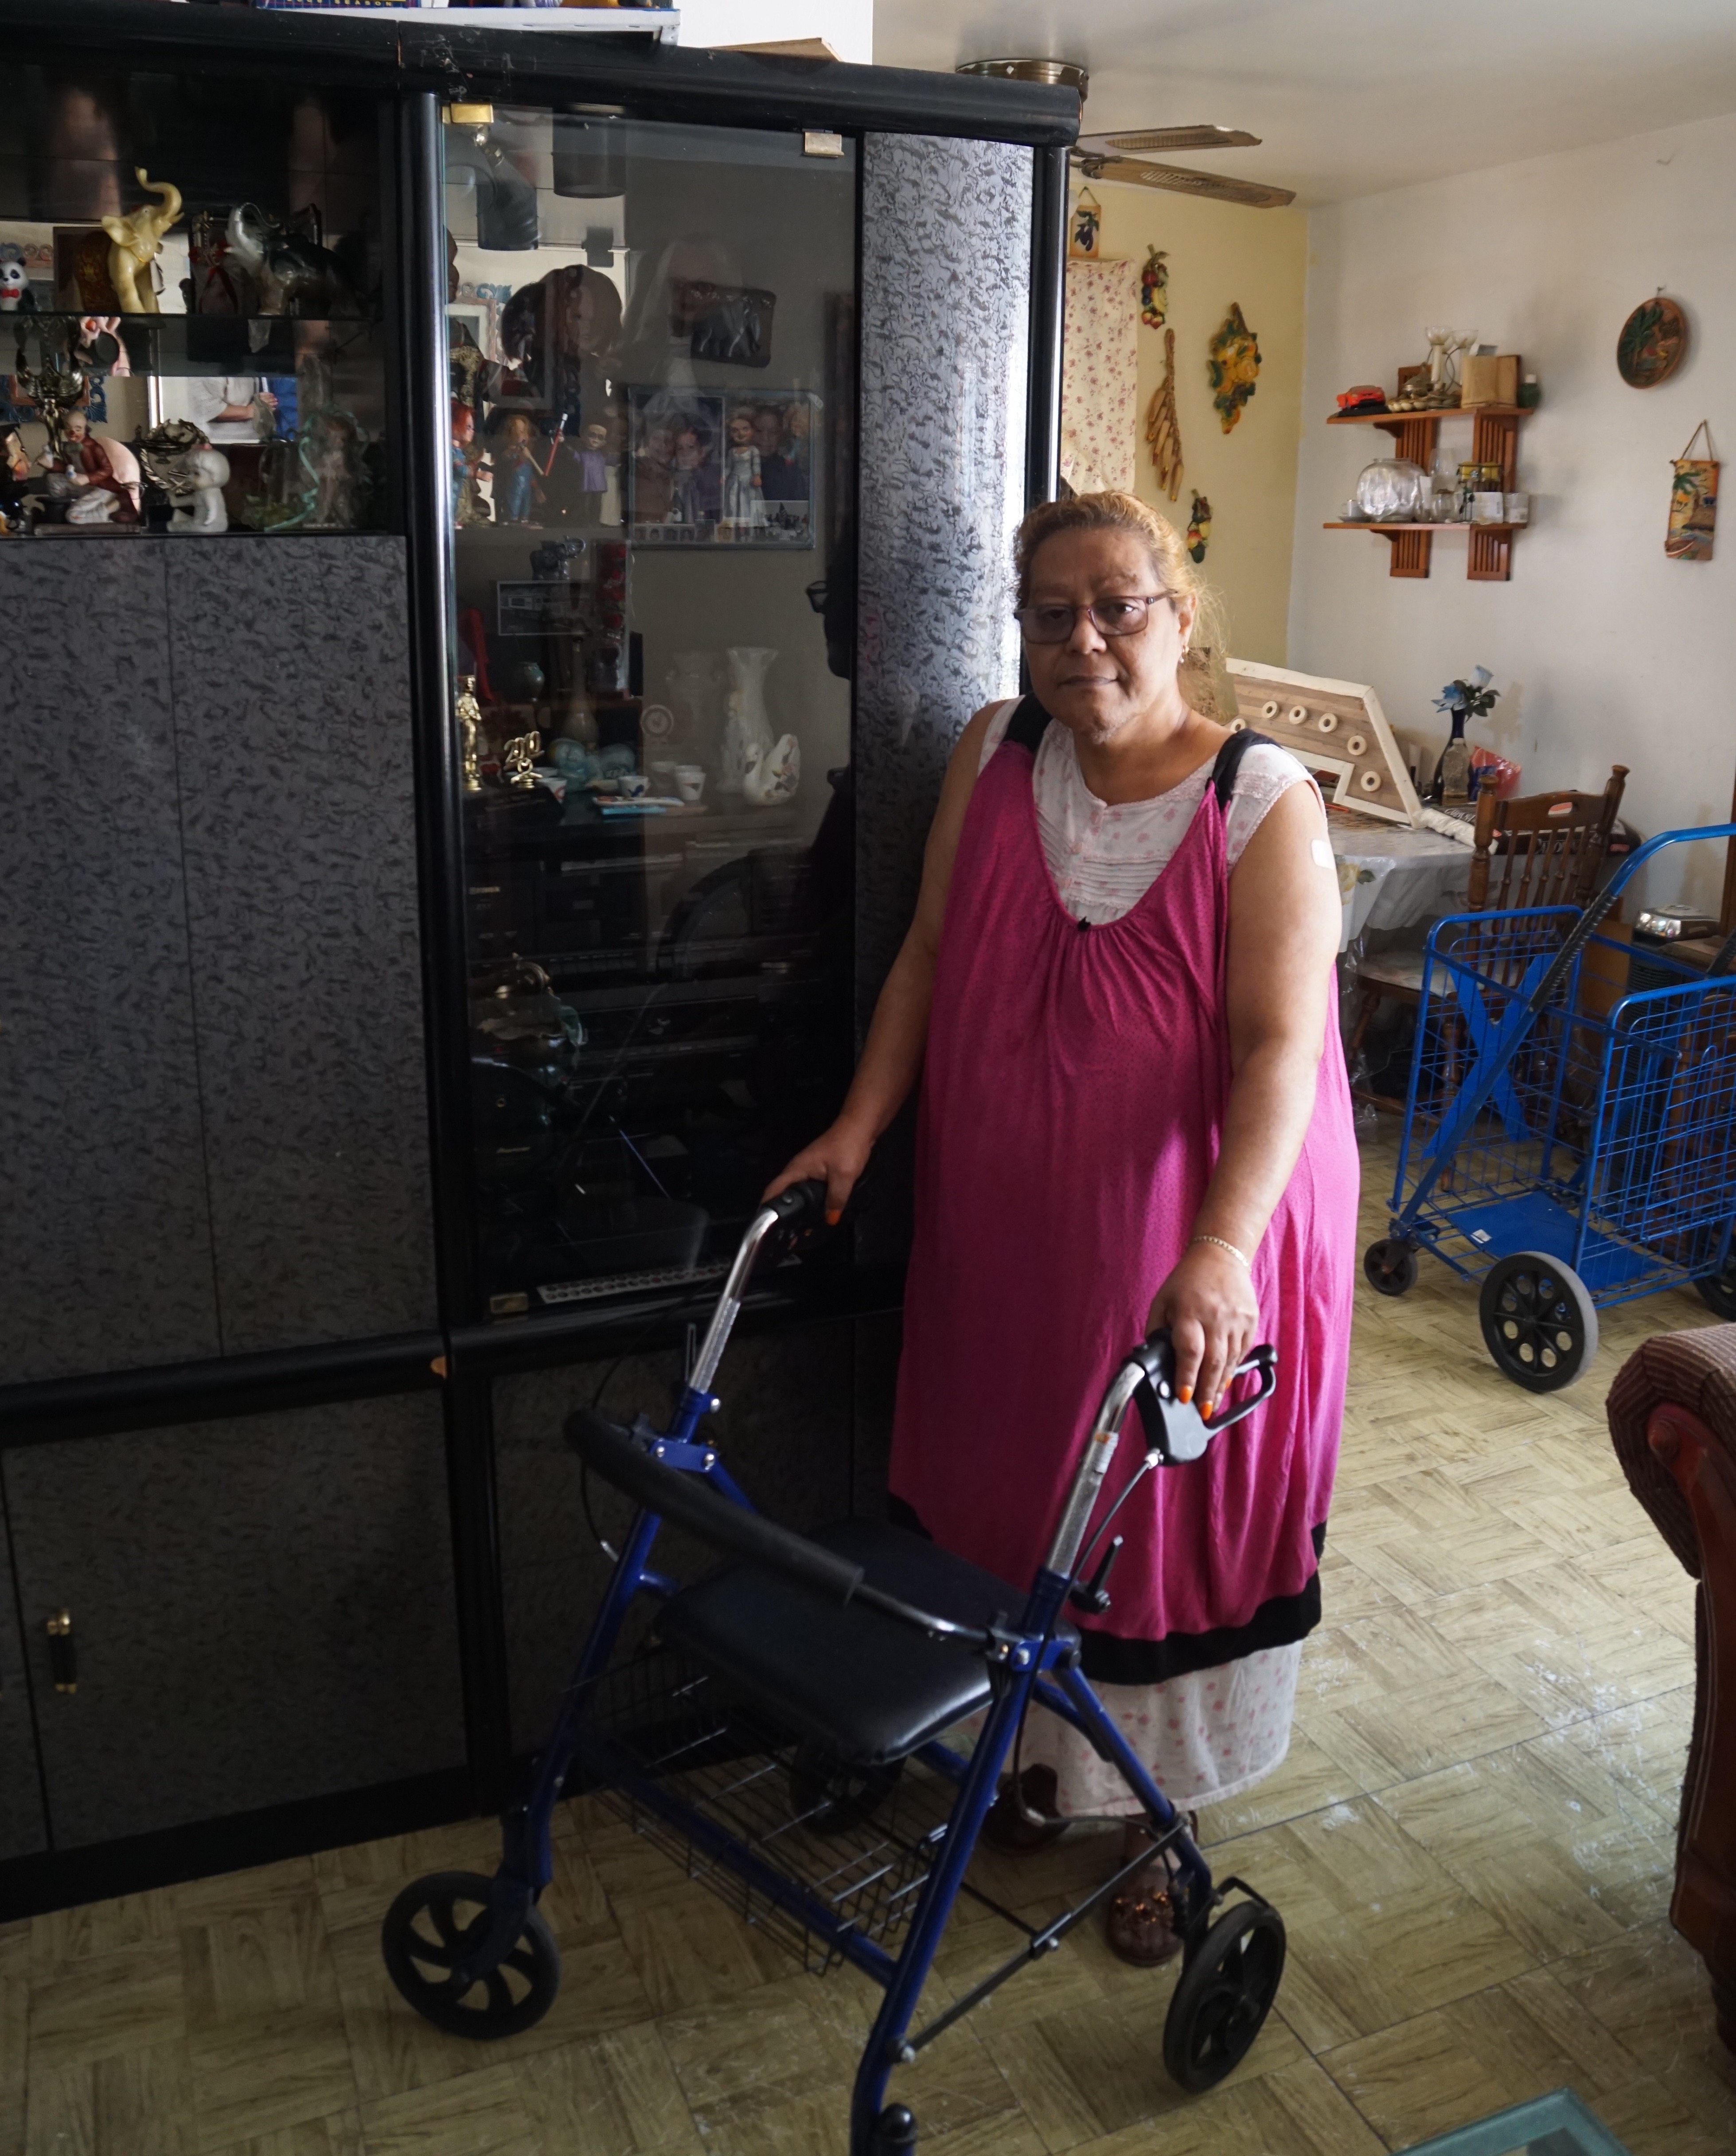 Elevator outages pose hard choices for Betances residents